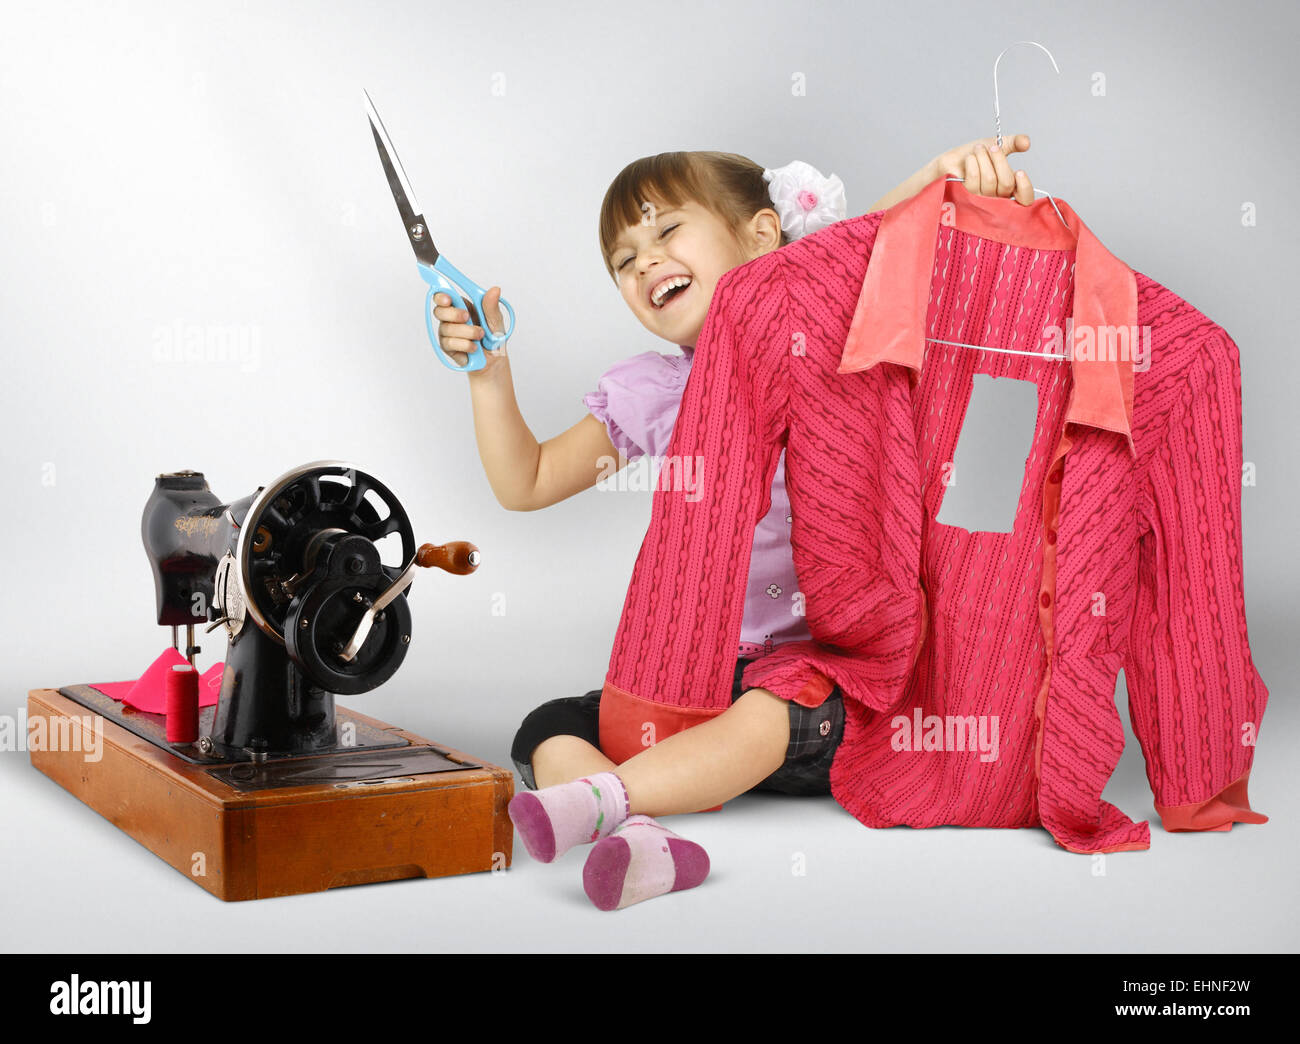 Little girl sewing , cuting dress - Stock Image